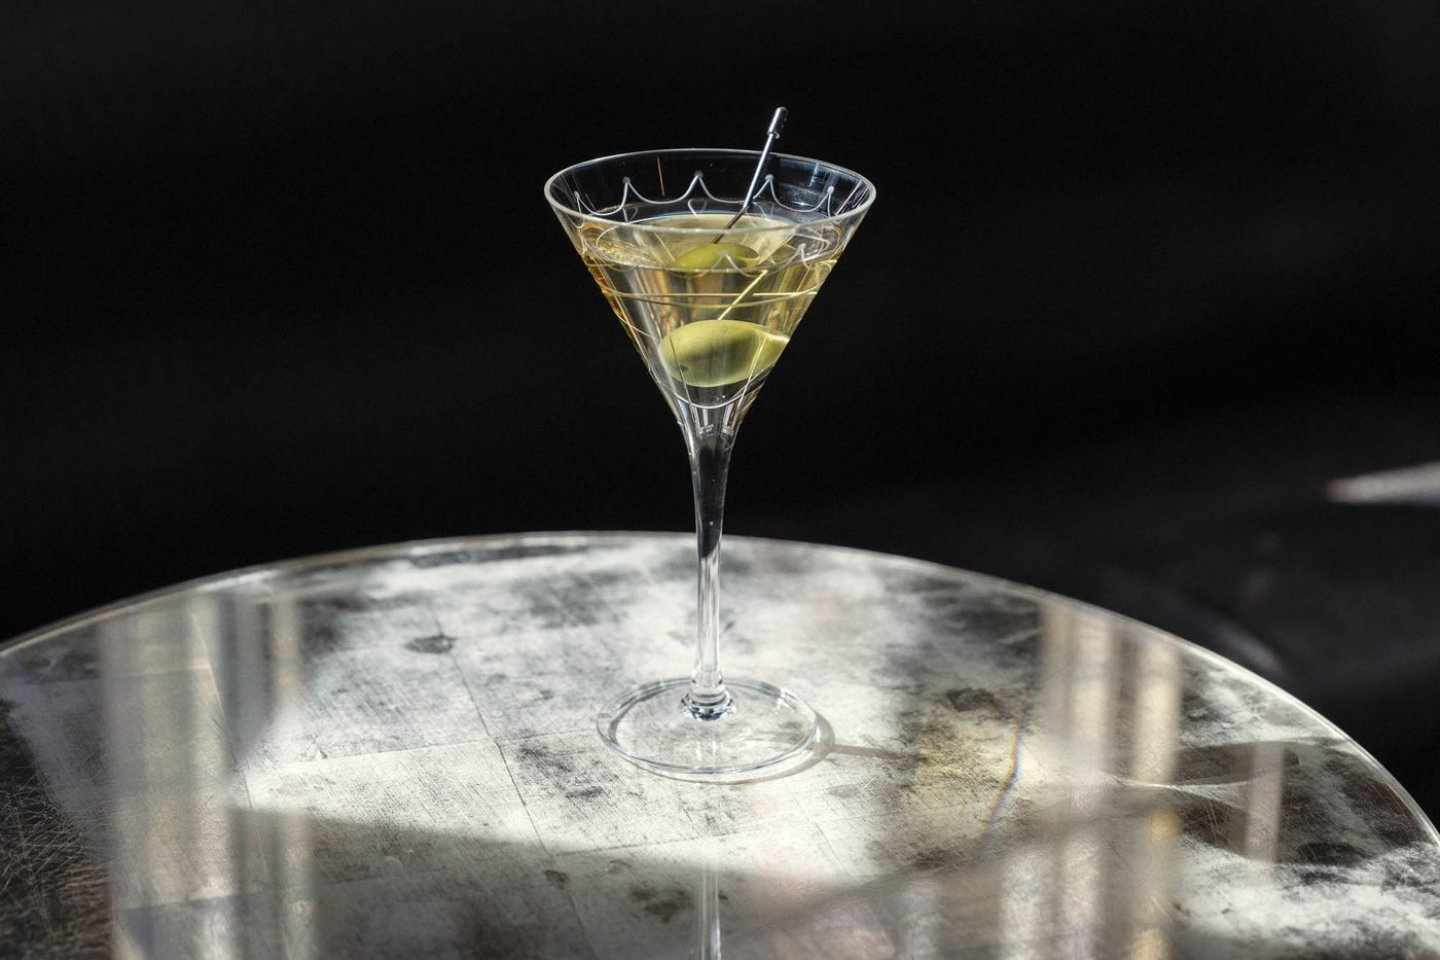 Bloomberg: The Greatest Martinis in the World